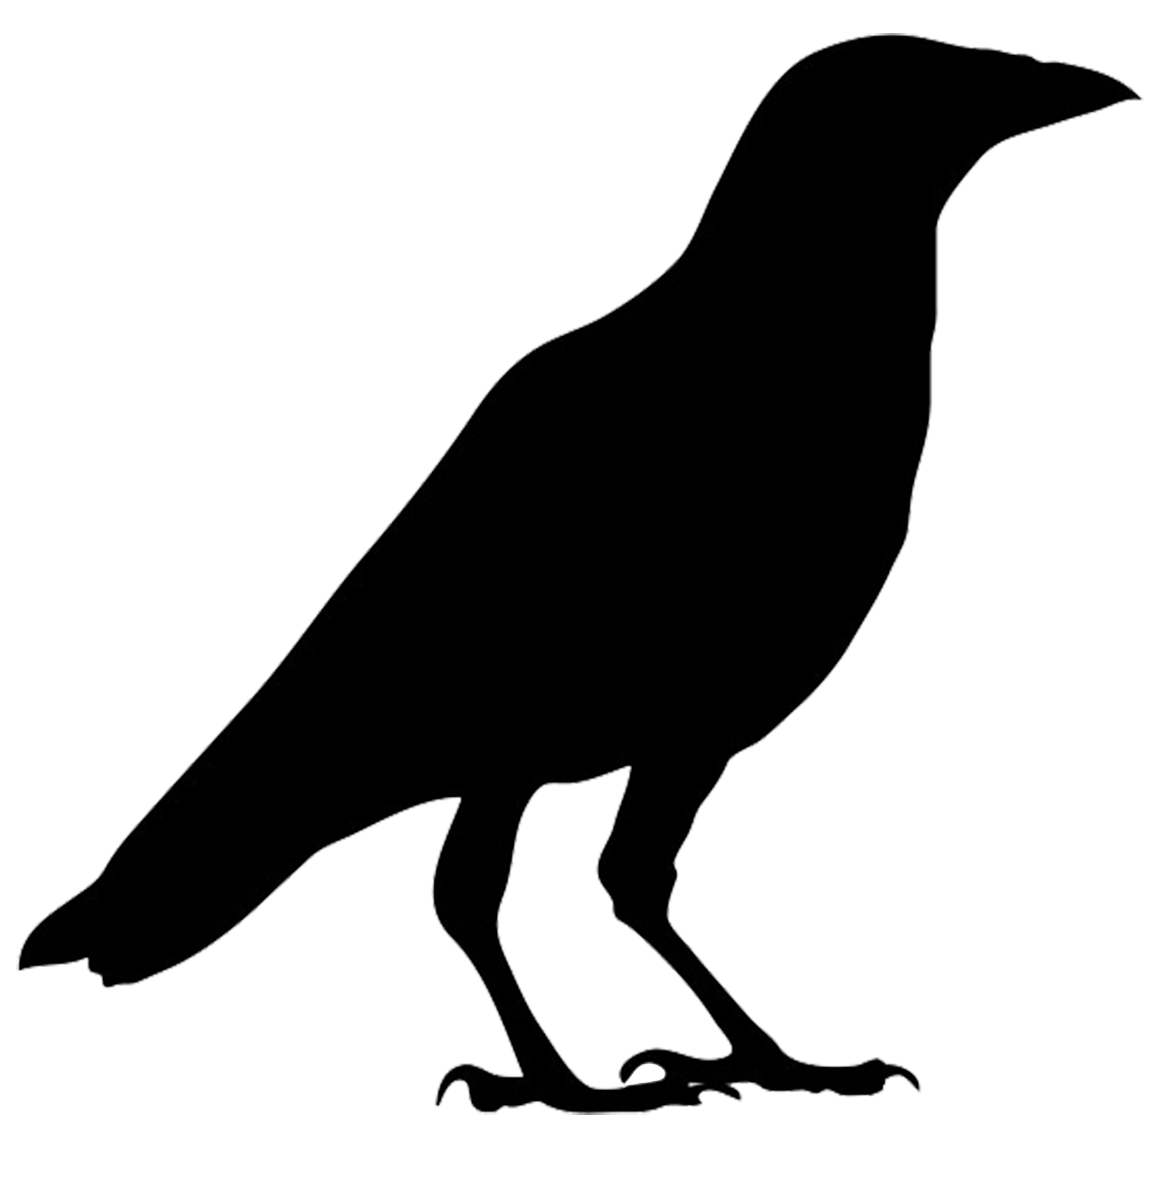 Crow silhouette png. Bird silhouettes